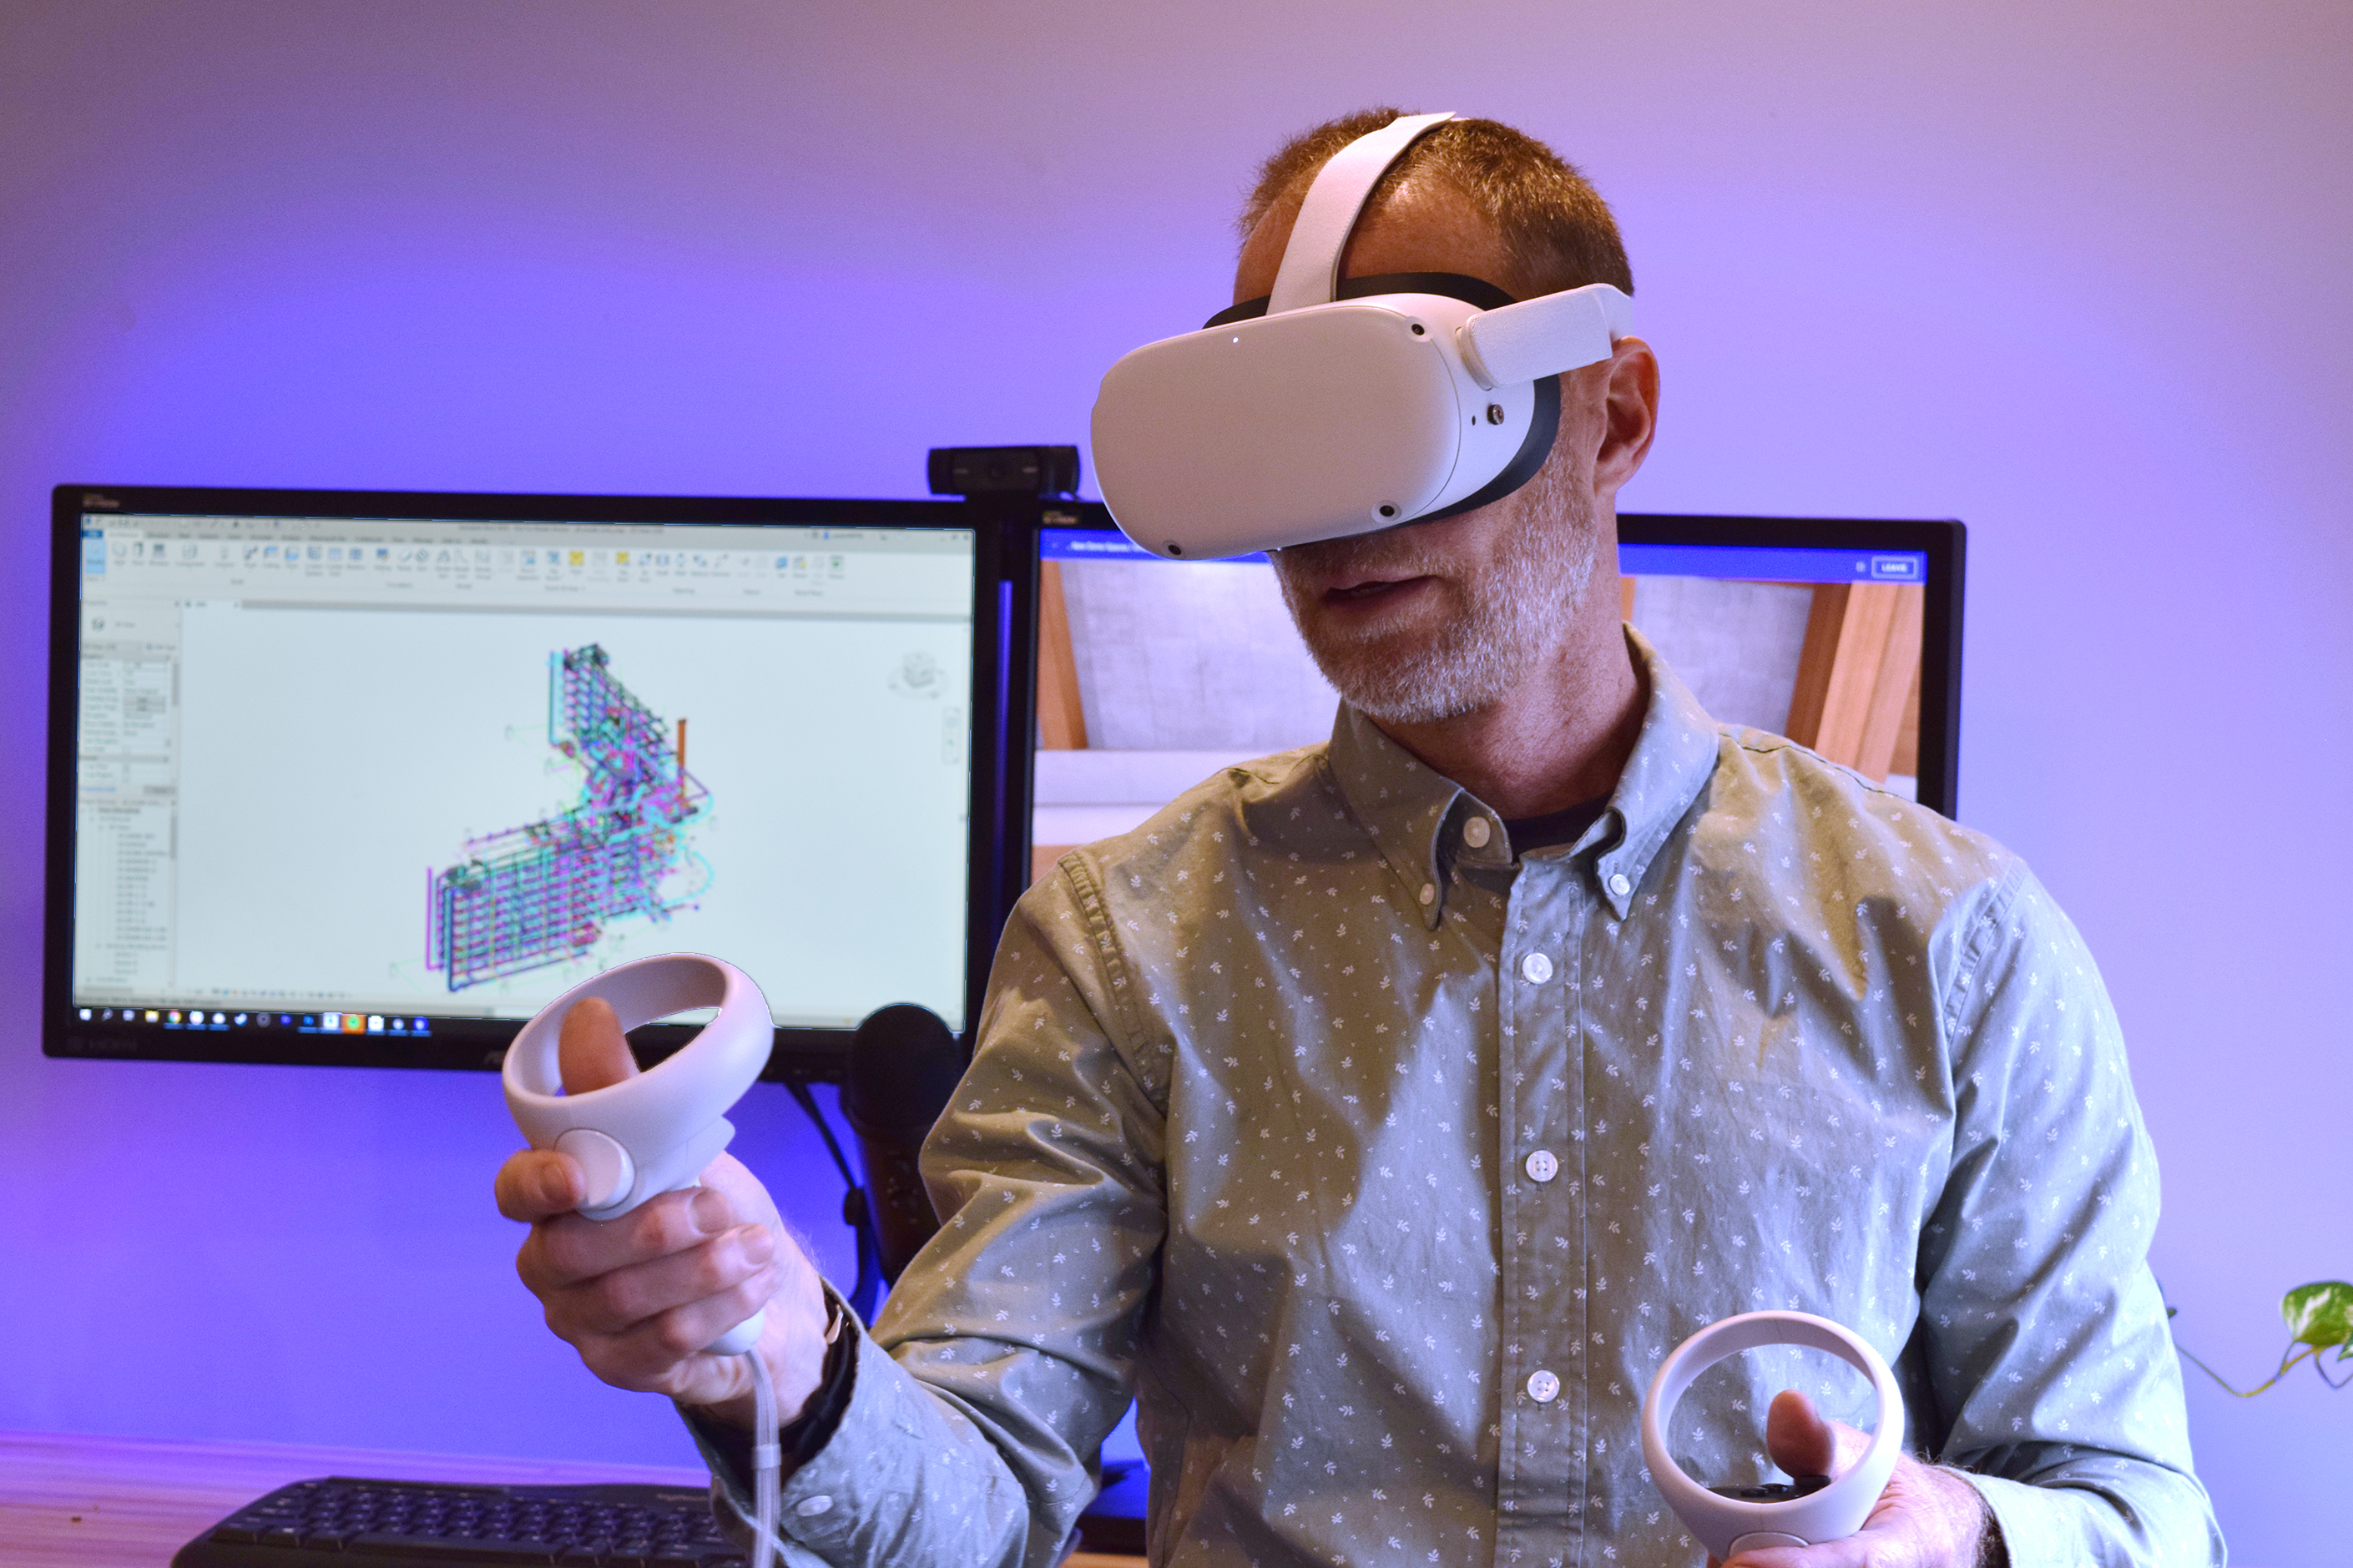 Getting Started with VR for Architecture Teams